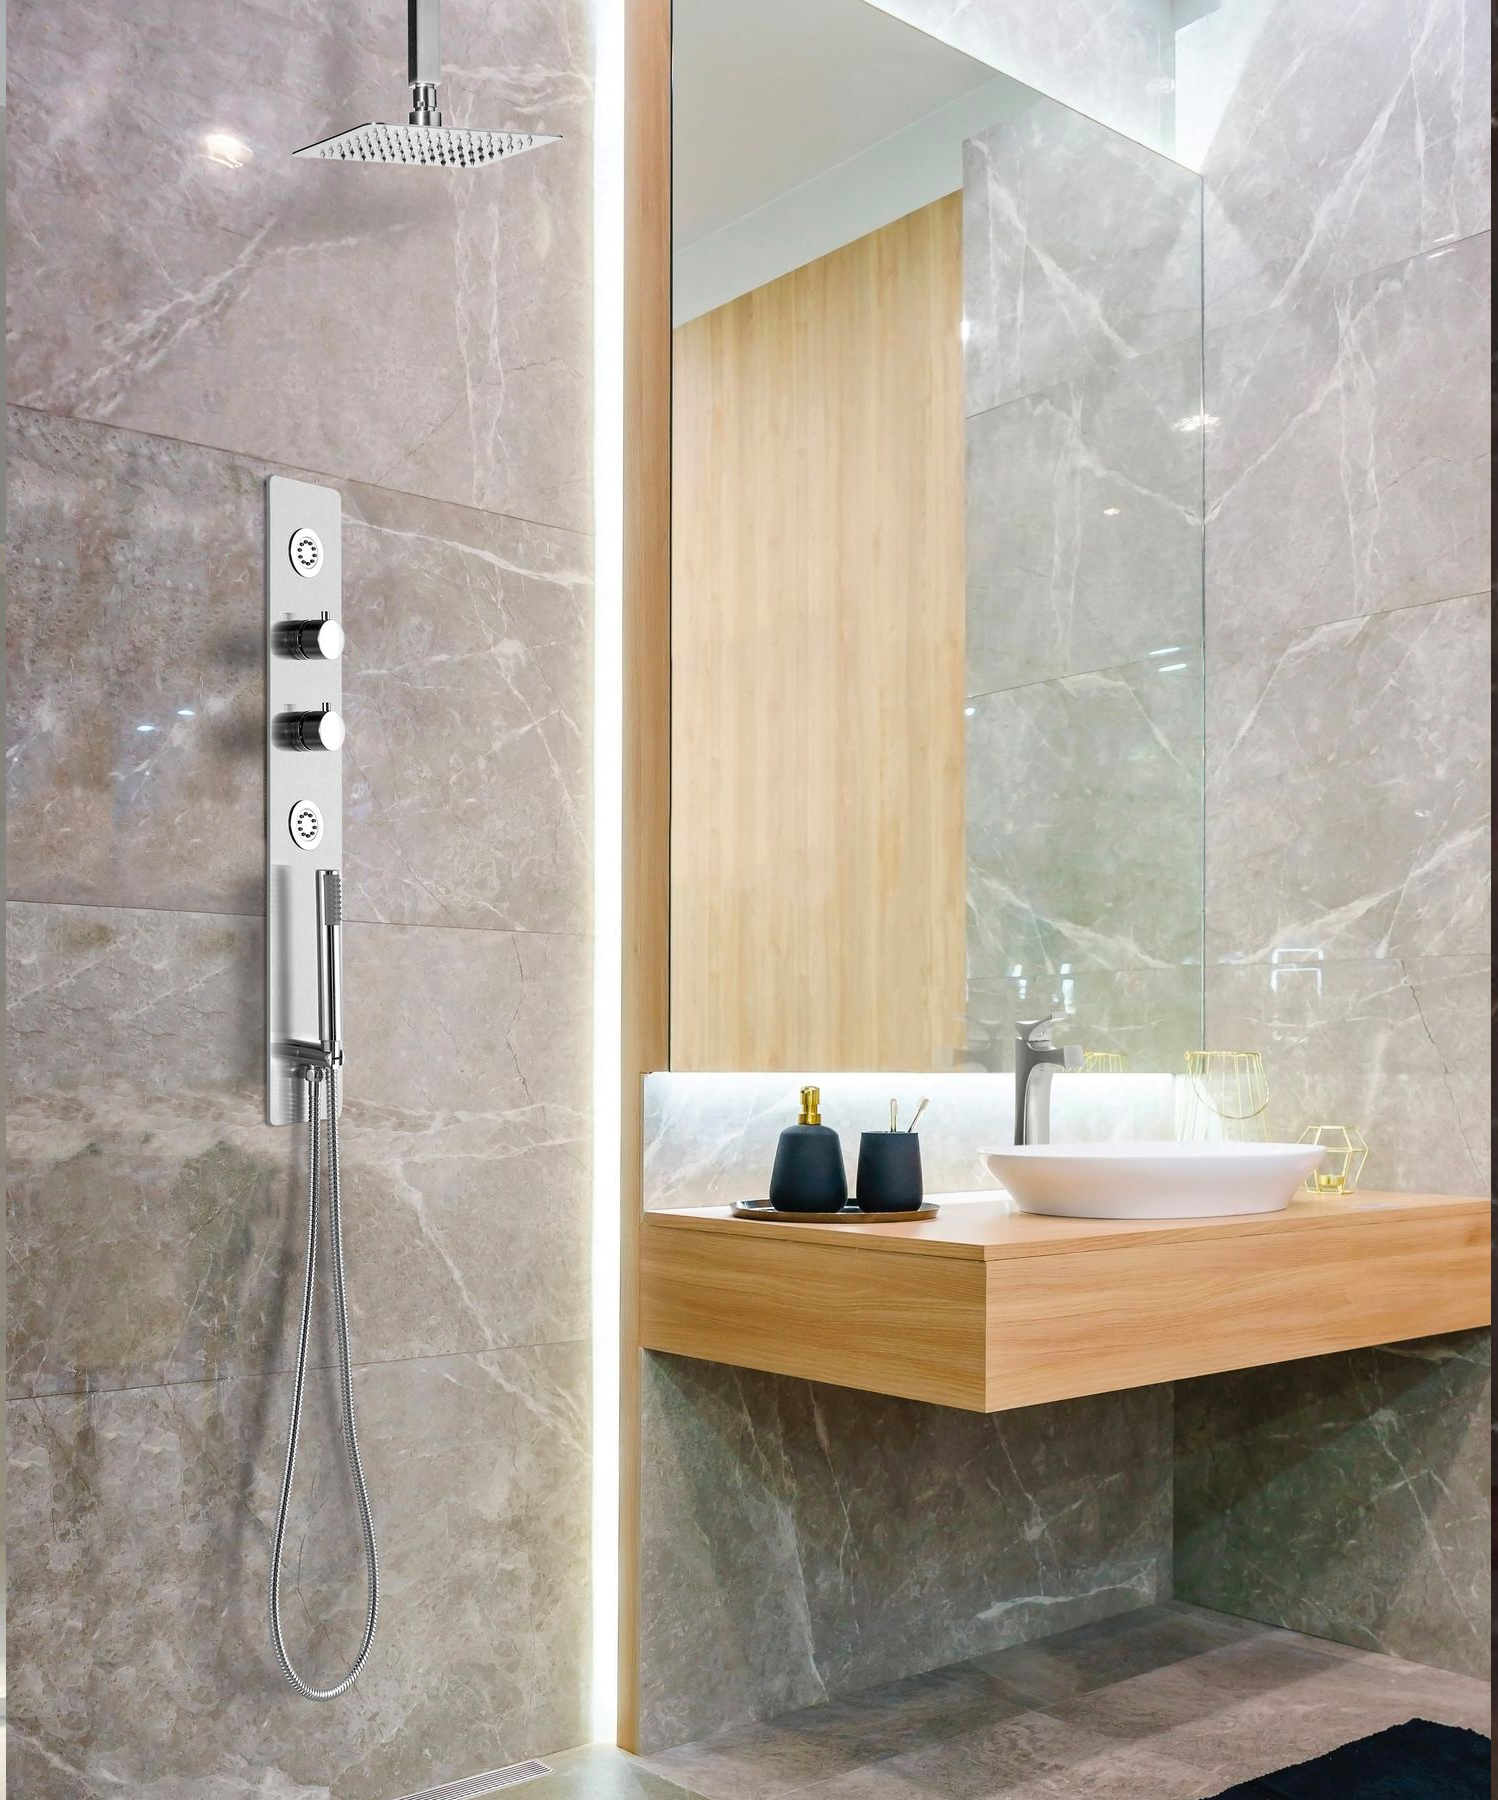 The shower system offers control over shower operations by allowing users to fine-tune their preferences and maintain water temperature within a single degree.